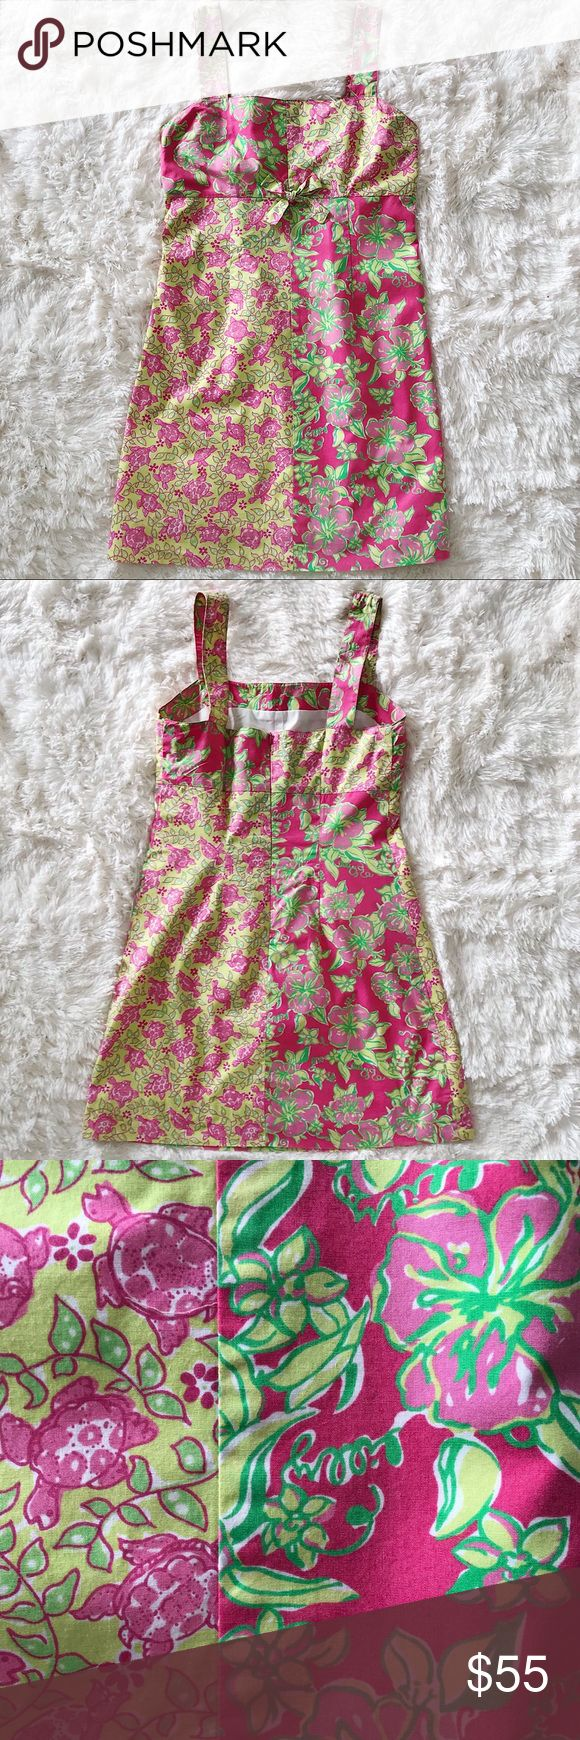 "Lilly Pulitzer pink and green dress Lilly Pulitzer pink and green turtle print dress EUC Size 6 Measurements flat:    Length (top of strap to hem) 32.5""   Underarm to underarm 15.5""   Strap 5.75""  Snap missing on bra strap holder (shown  in picture) Lilly Pulitzer Dresses"